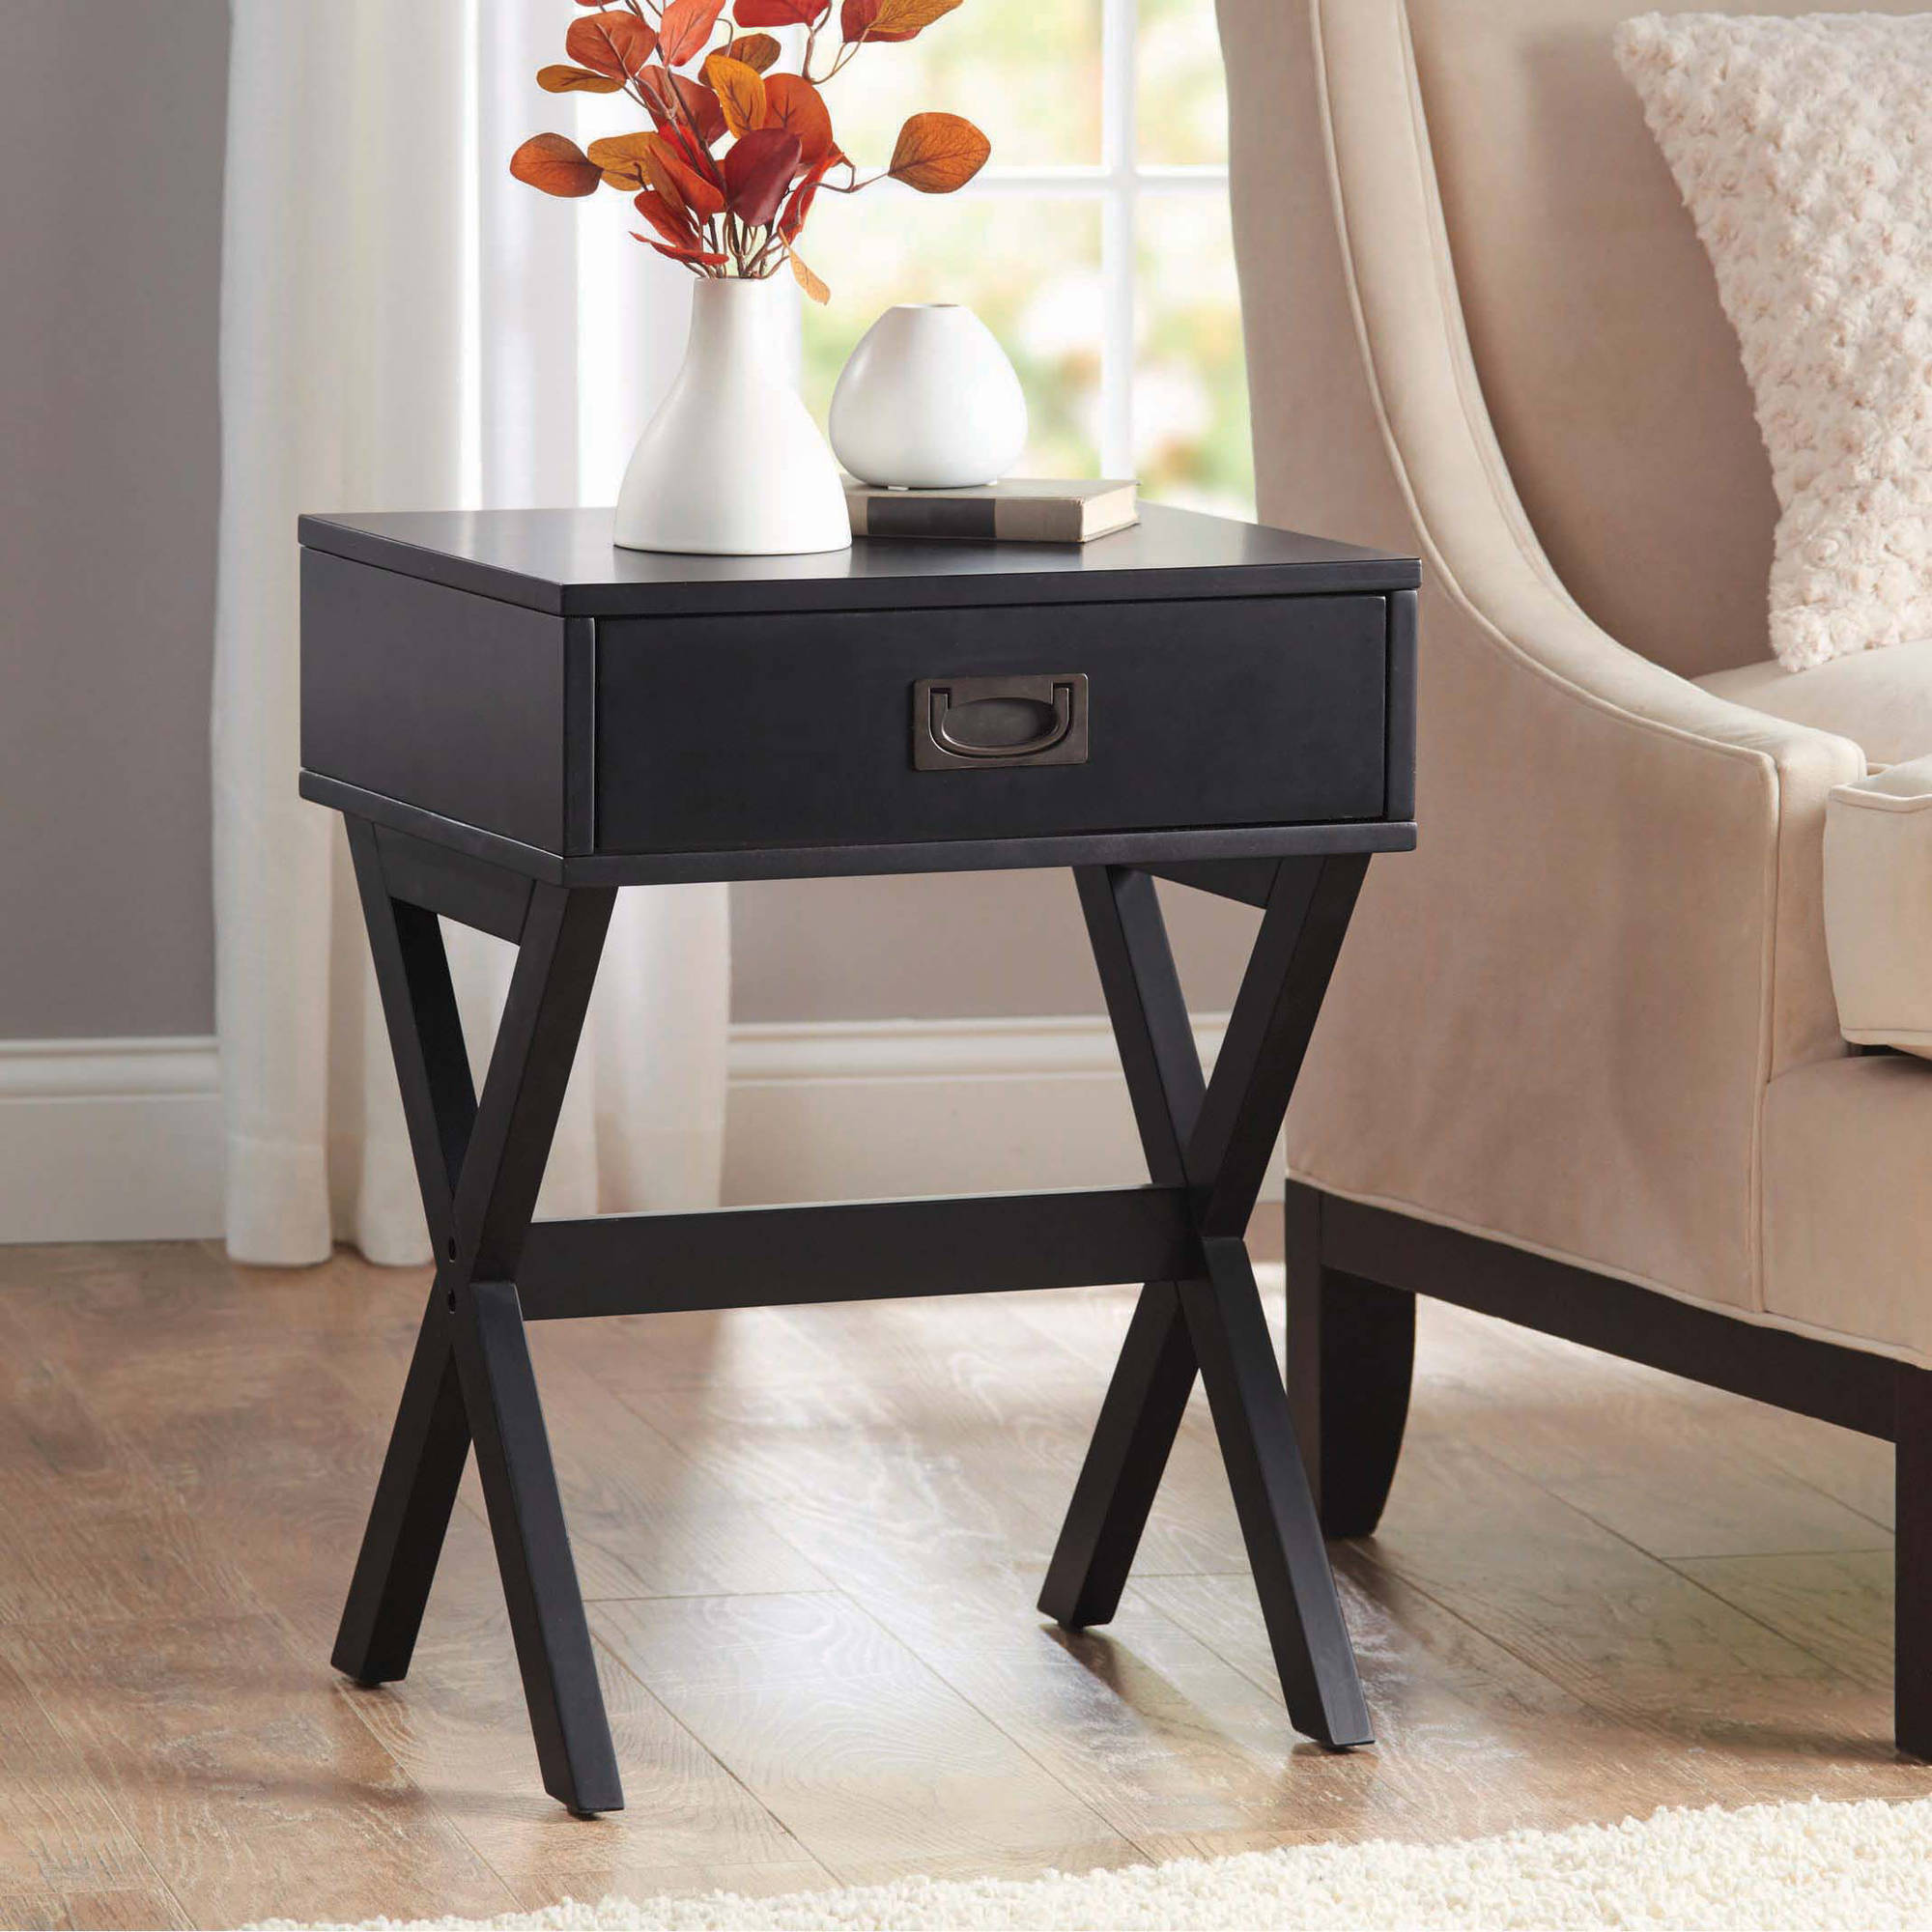 Better Homes and Gardens X-Leg Accent Table with Drawer, Multiple Colors